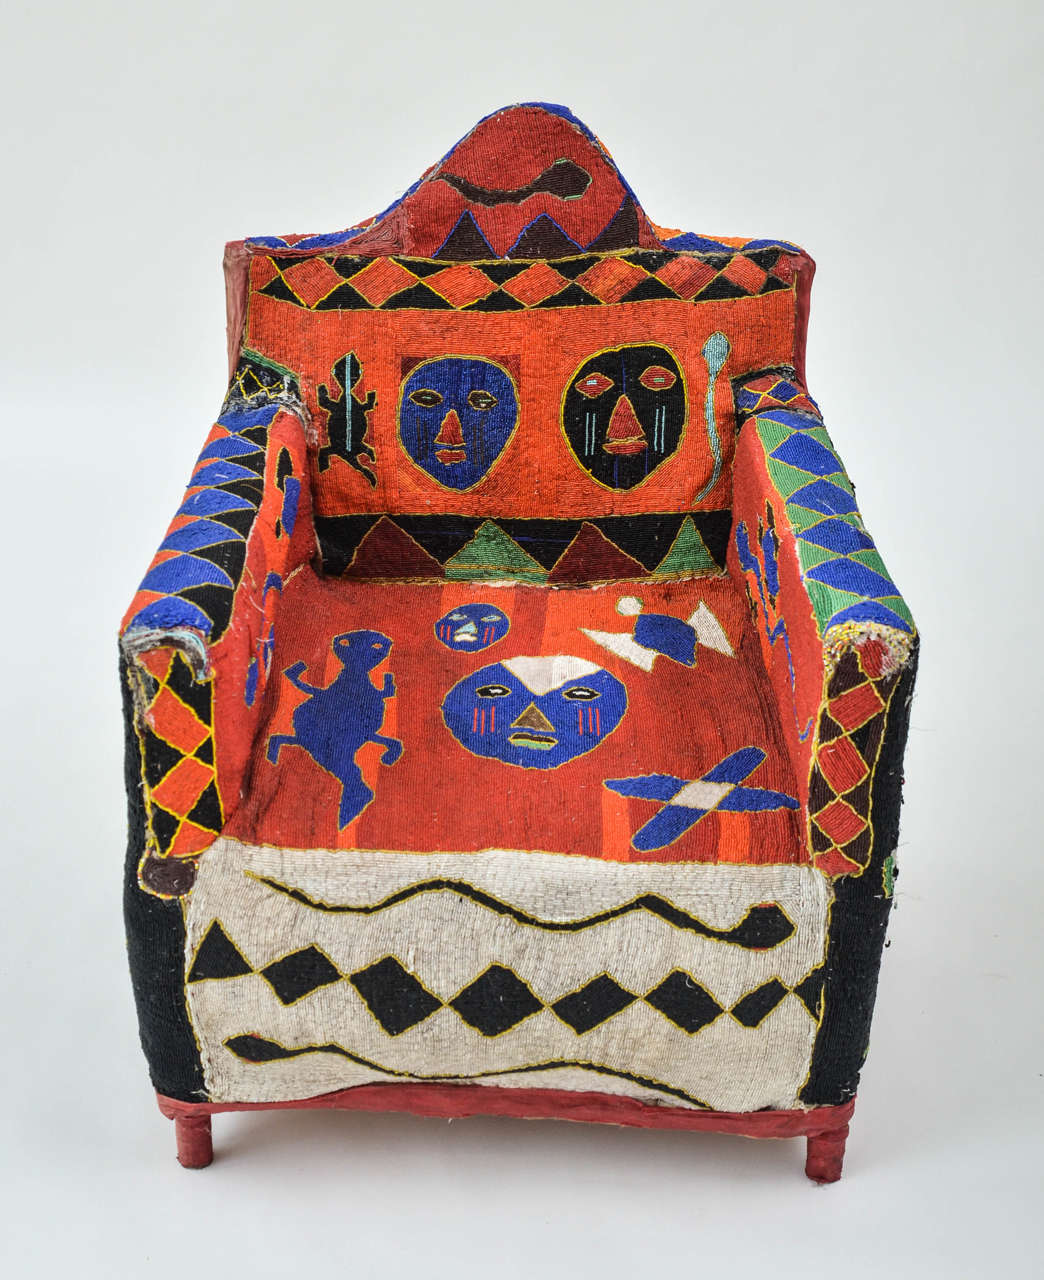 Colorful and intricately hand-beaded chair with iconic tribal, geometric and animal motifs.